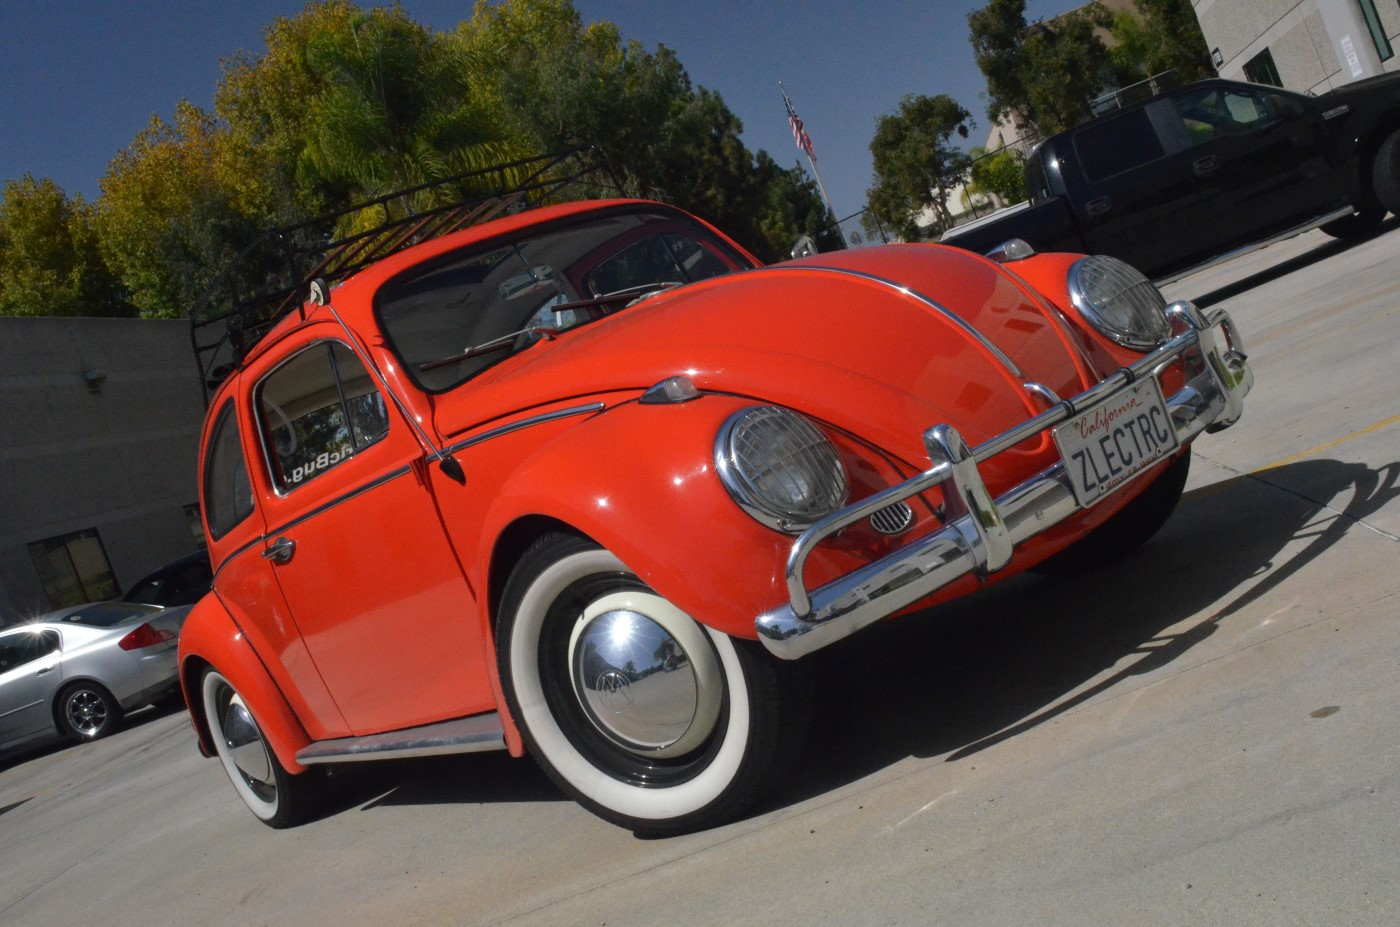 Zelectric Motors 1963 Volkswagen Beetle Electric Car Driven